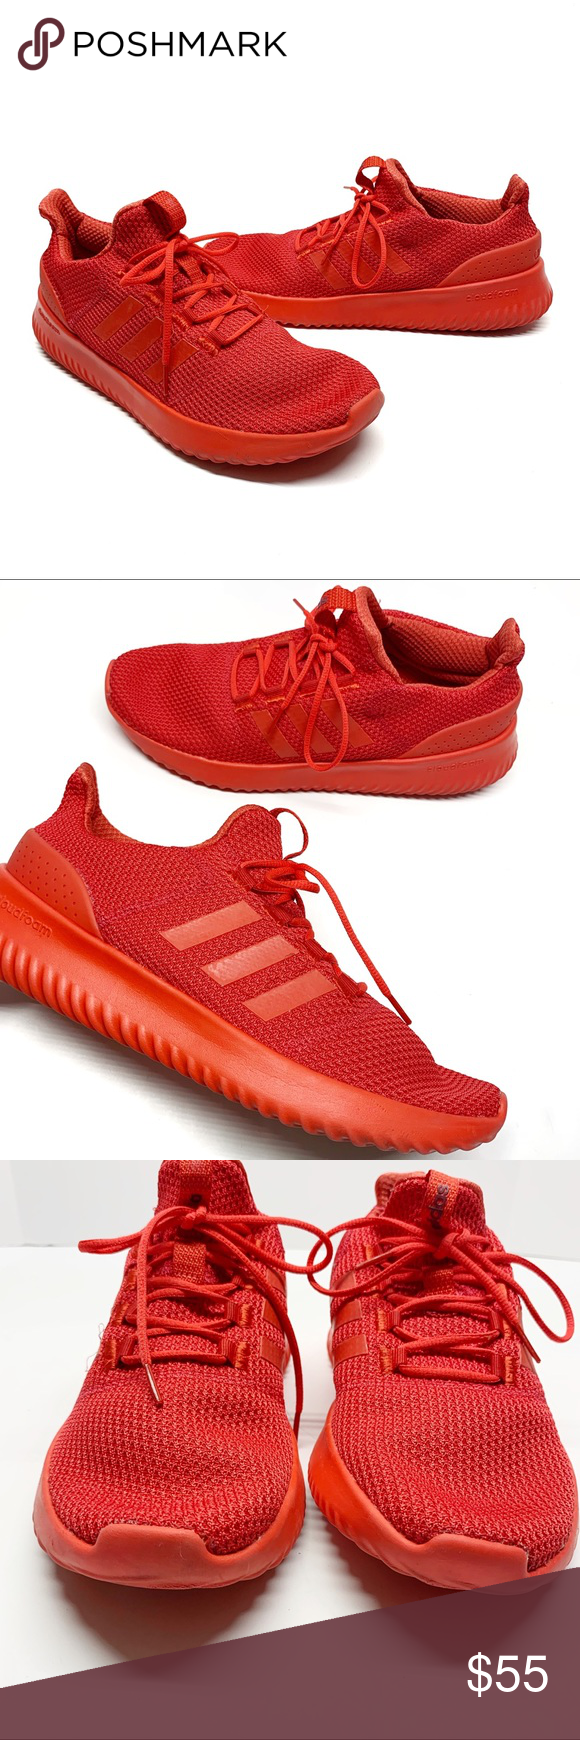 ❌SOLD❌ • Adidas Cloudfoam Ultimate Running Shoes | Adidas ...